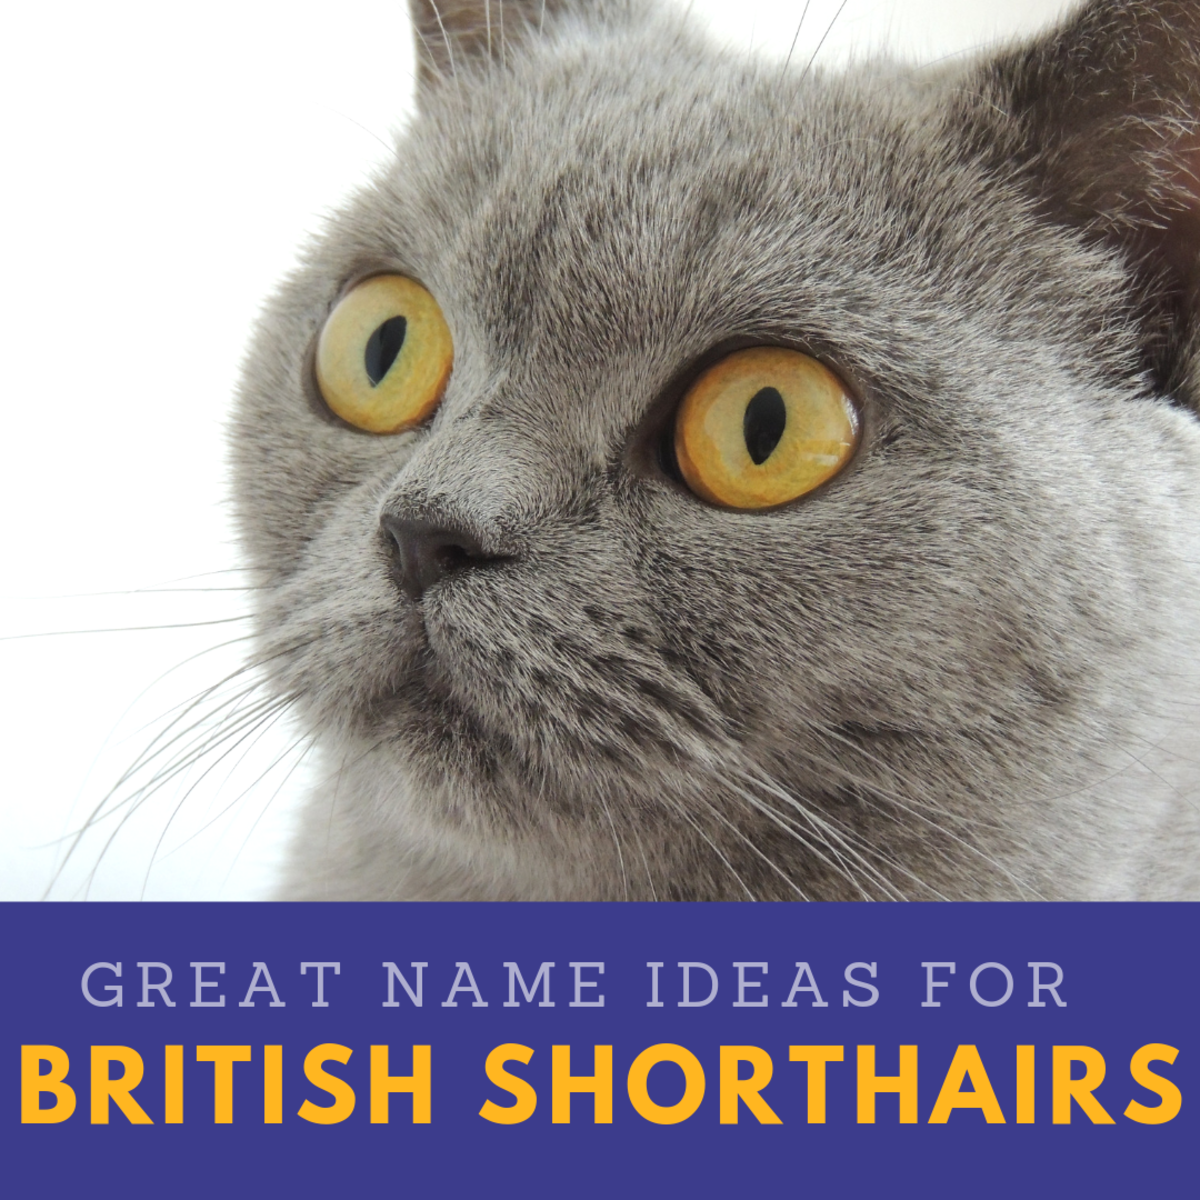 Name Ideas for British Shorthair Cats